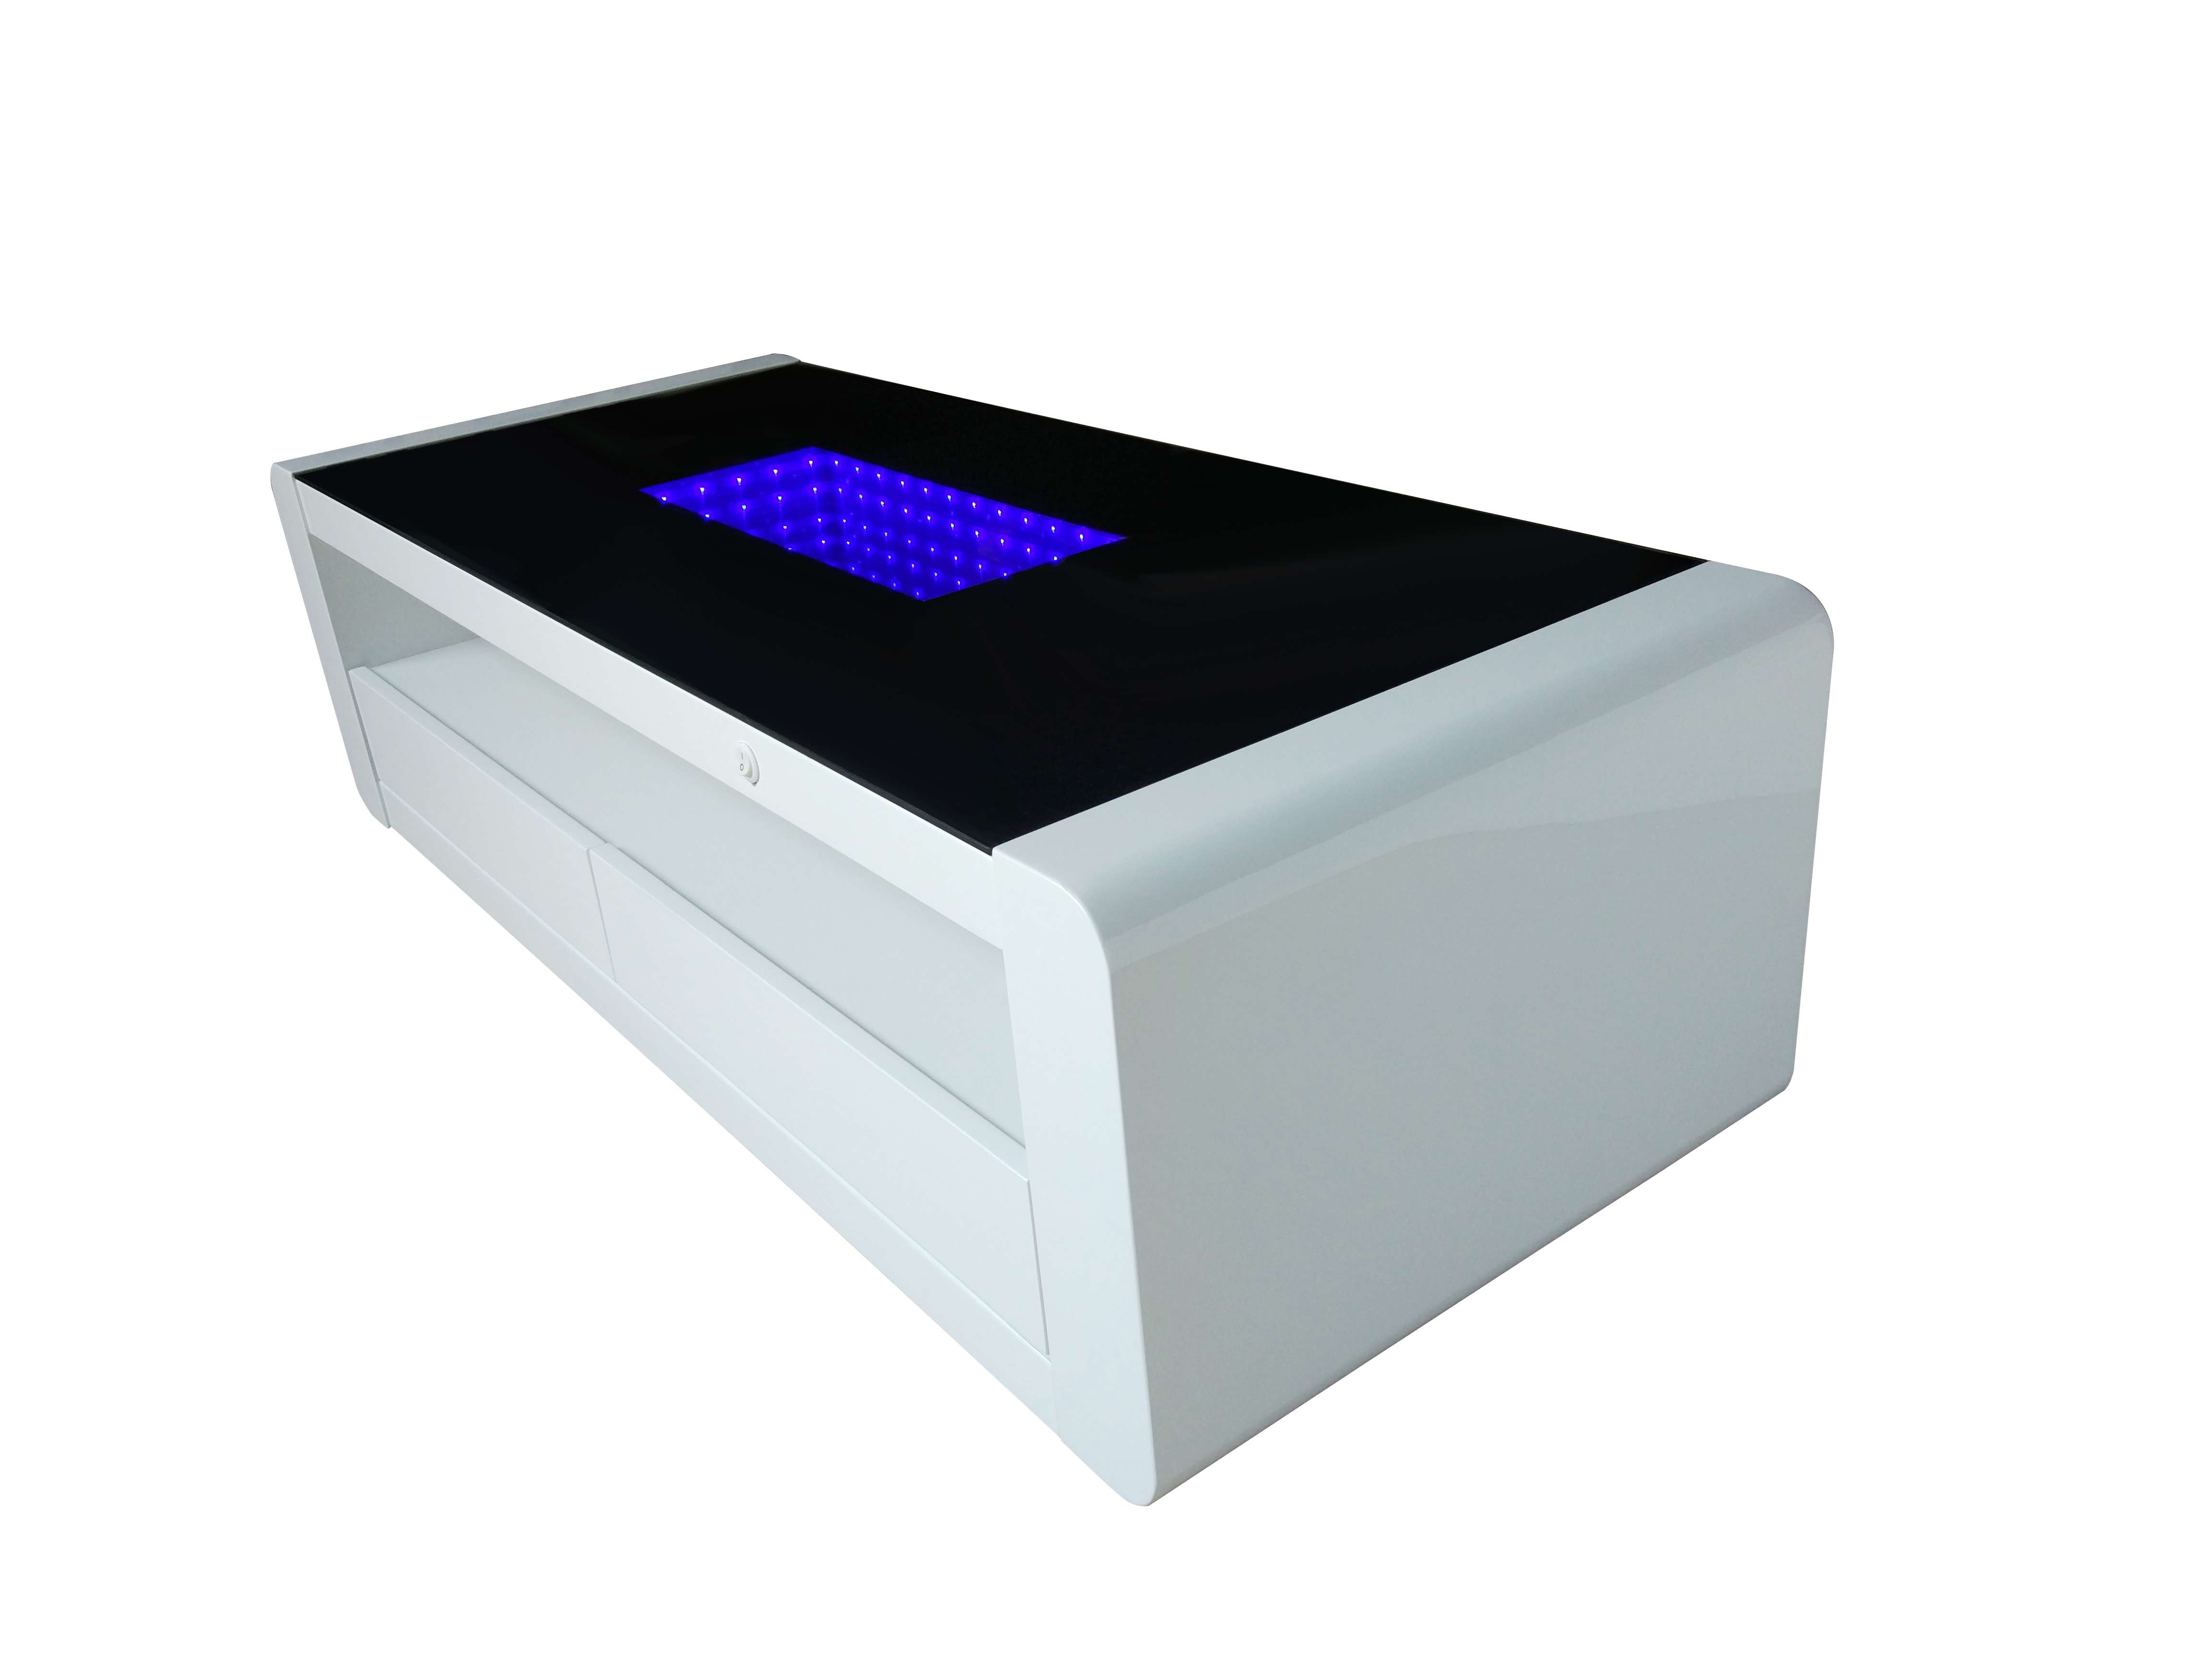 Matrix High Gloss Coffee Table – White & Black Gloss With Blue Led With Best And Newest High Gloss Coffee Tables (View 7 of 20)